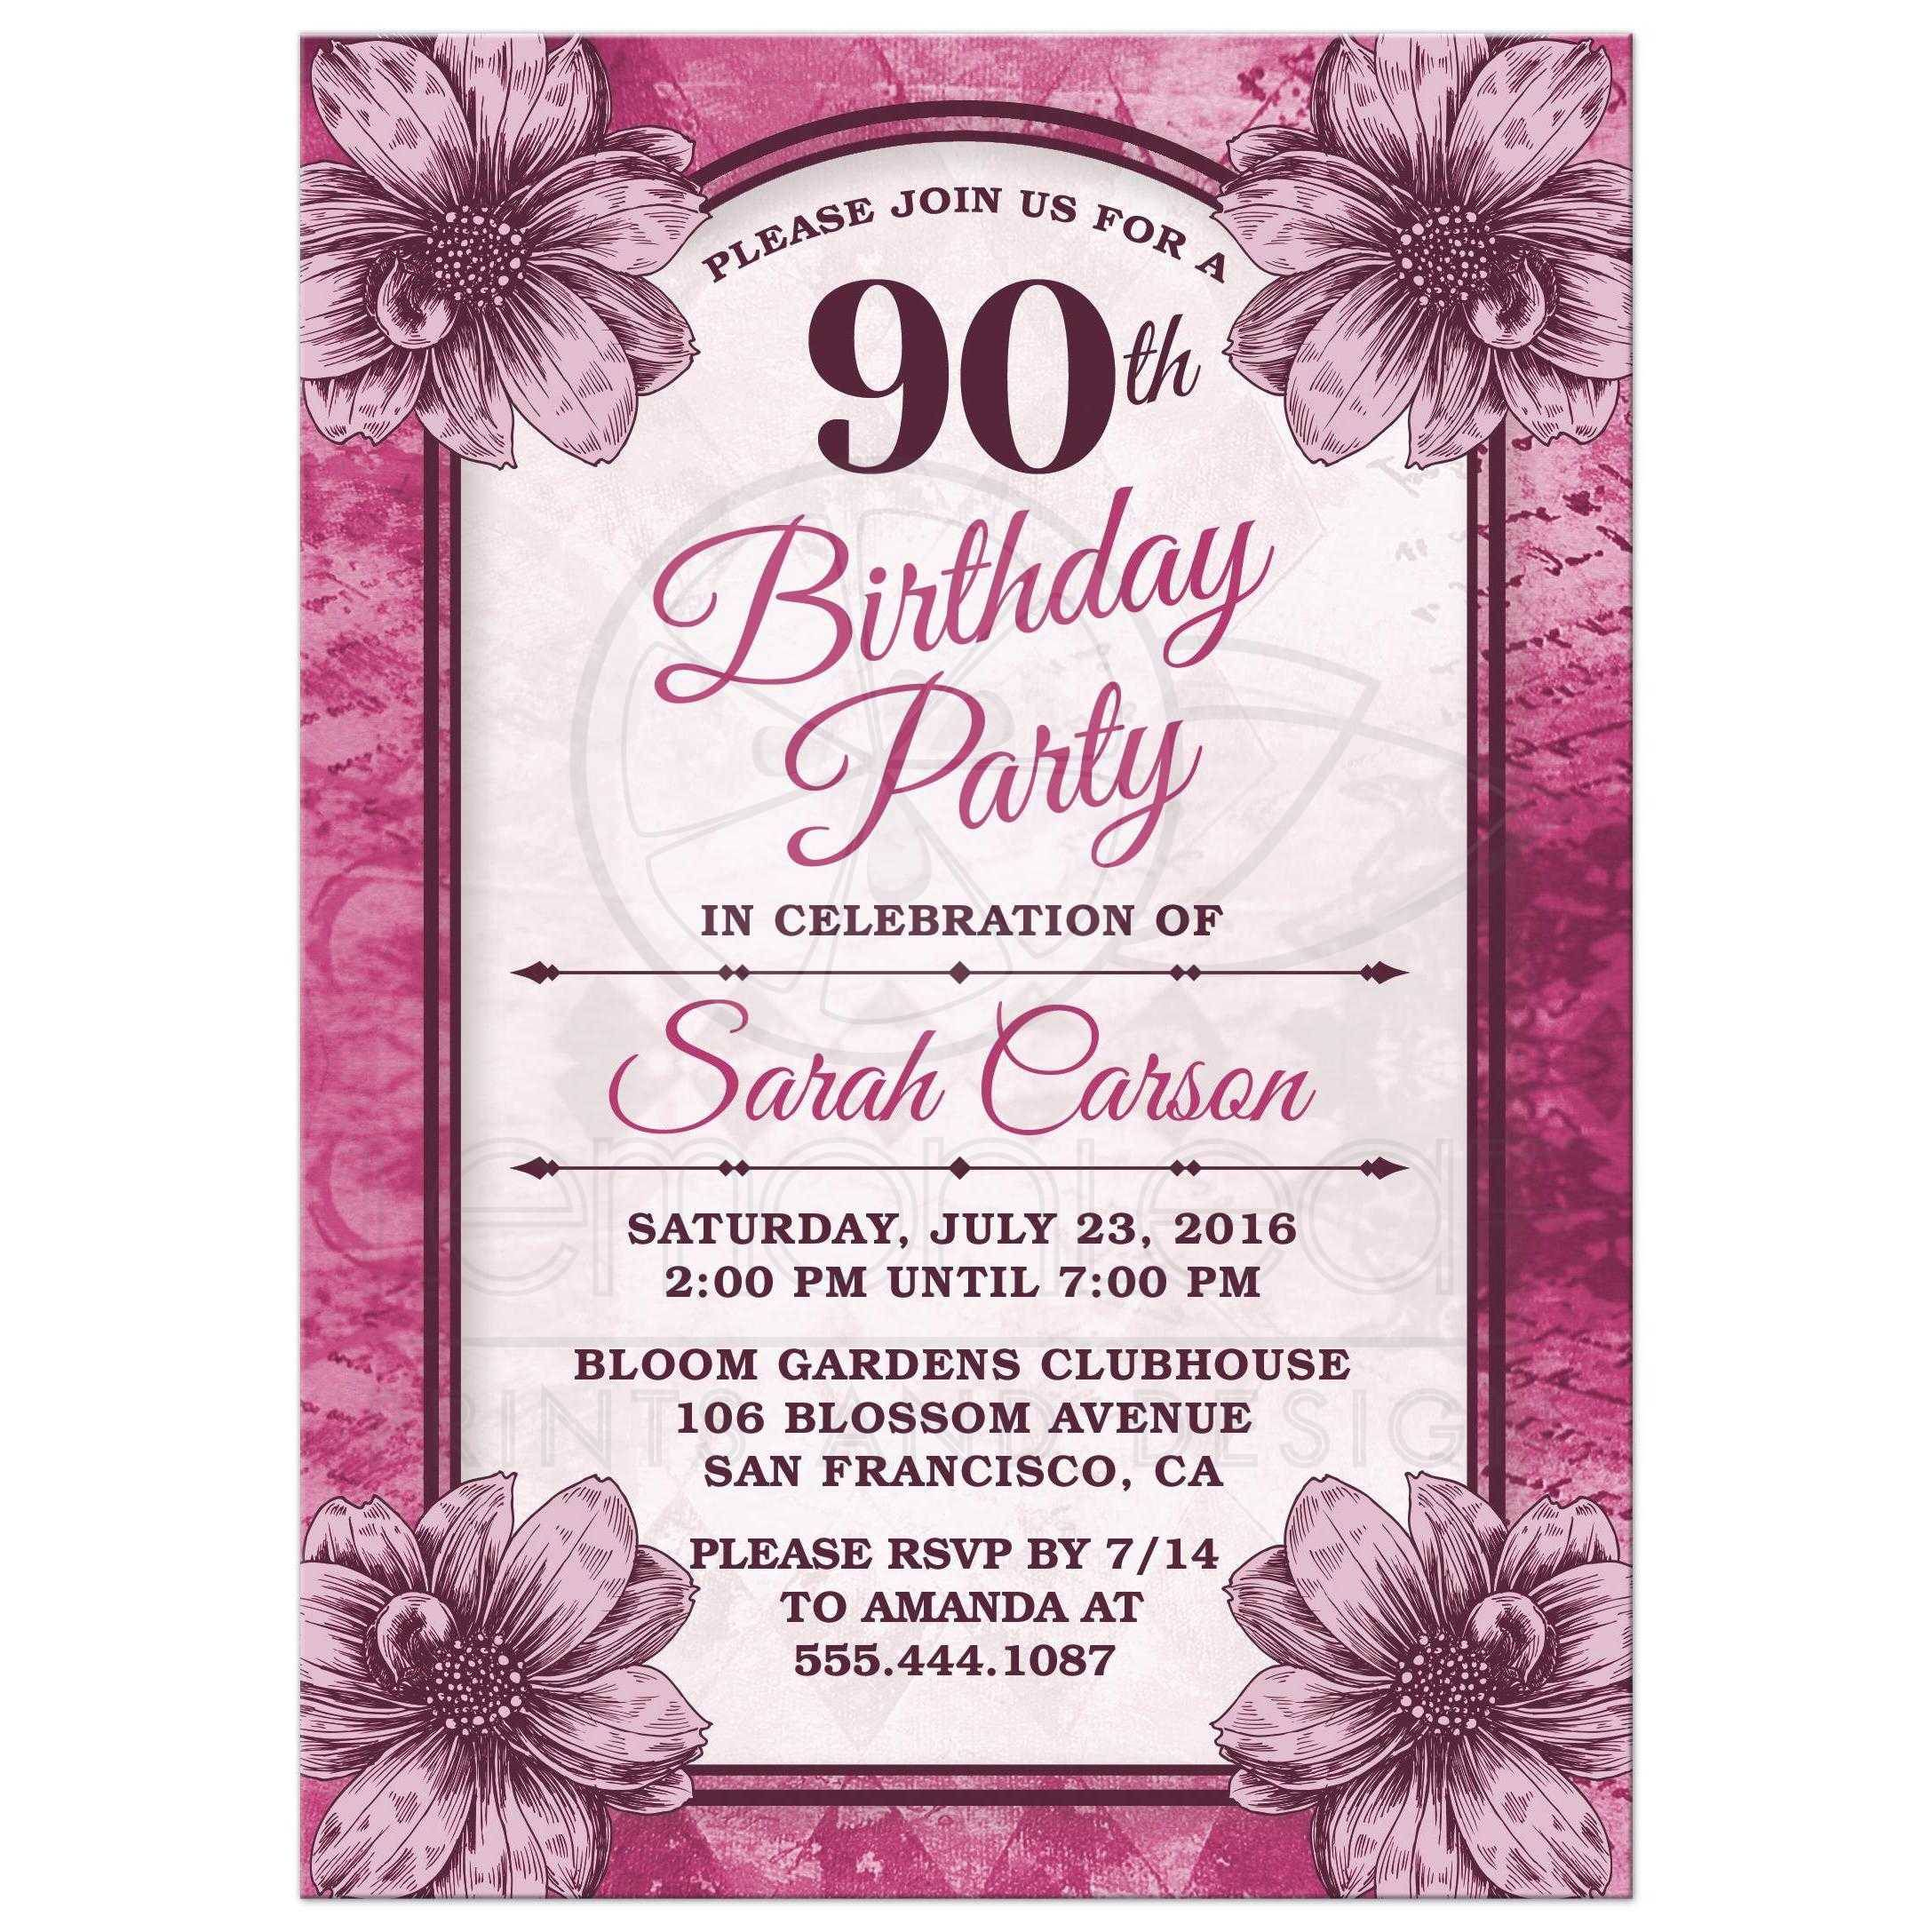 90th Birthday Party Invitations Templates Free  Birthday Invitation Samples